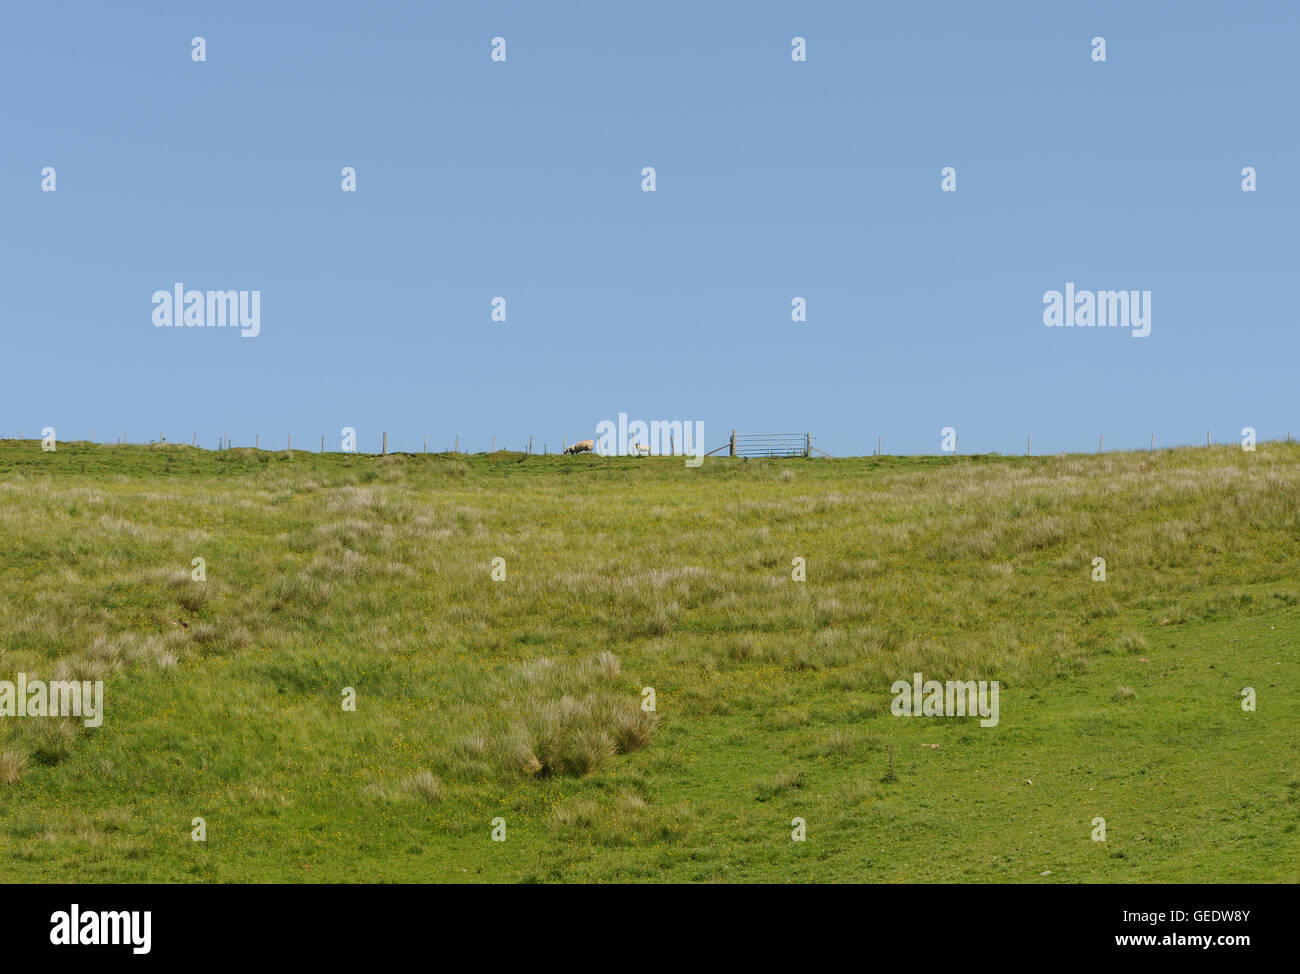 A field of poor grassland with a fence, gate and sheep. Islay, Inner Hebrides, Argyll, Scotland, UK. - Stock Image